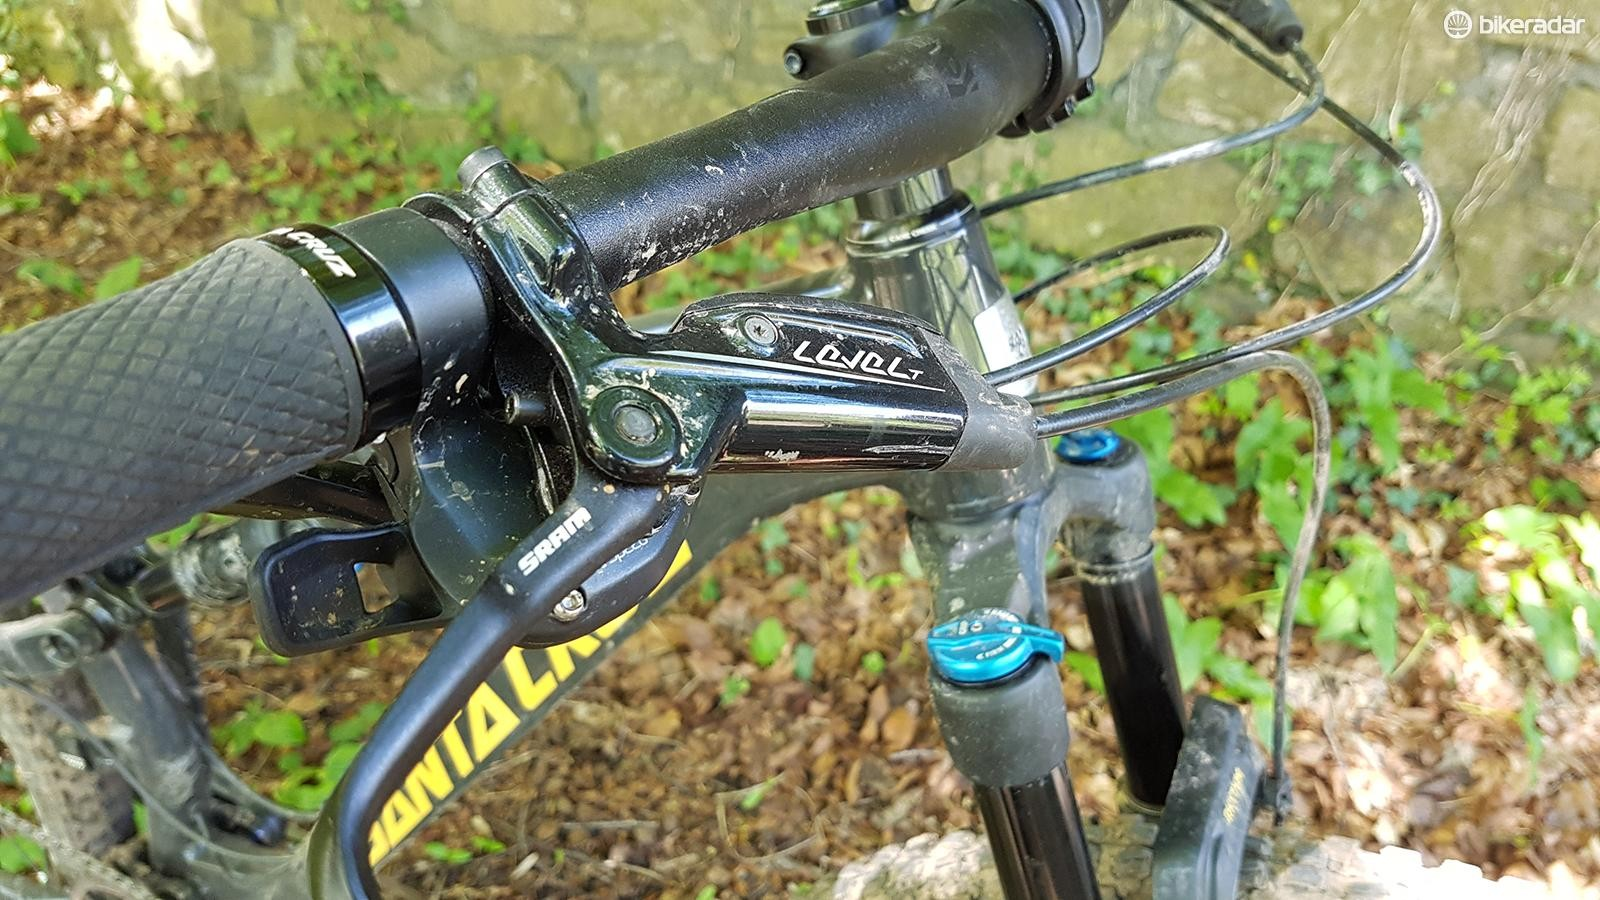 SRAM Level T brakes aren't the most powerful